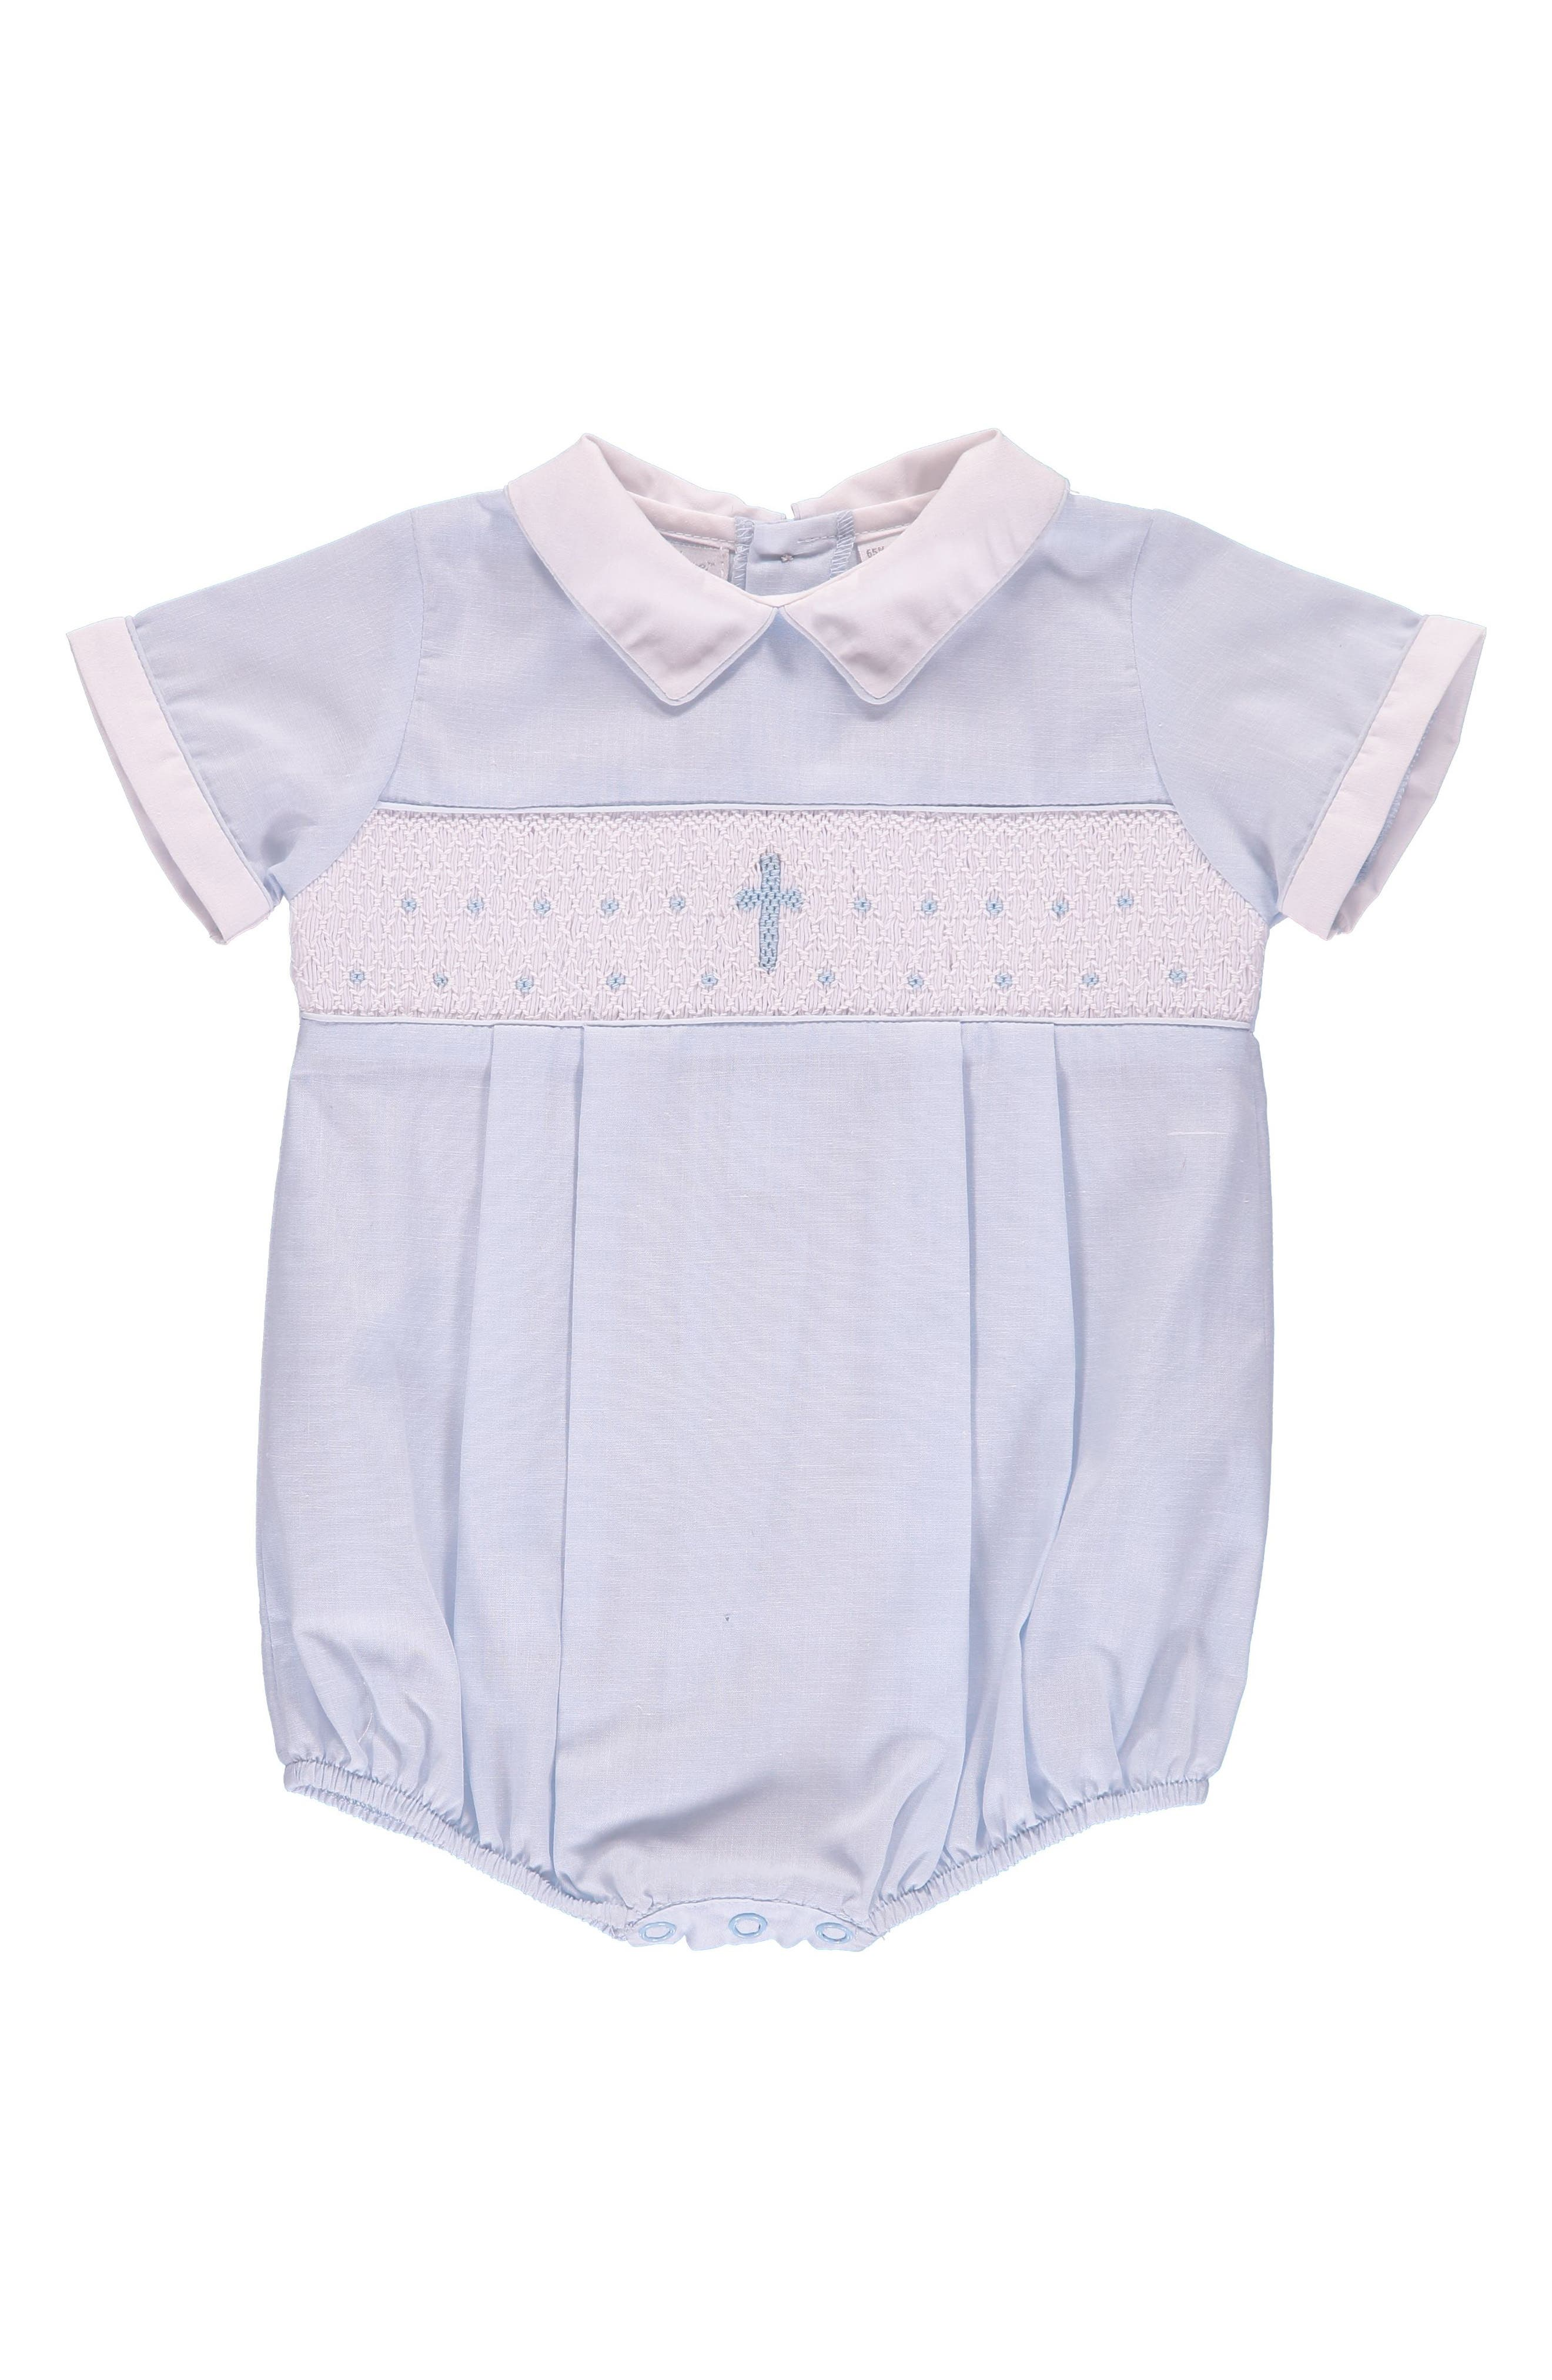 Main Image - Carriage Boutique Christening Bodysuit (Baby Boys)